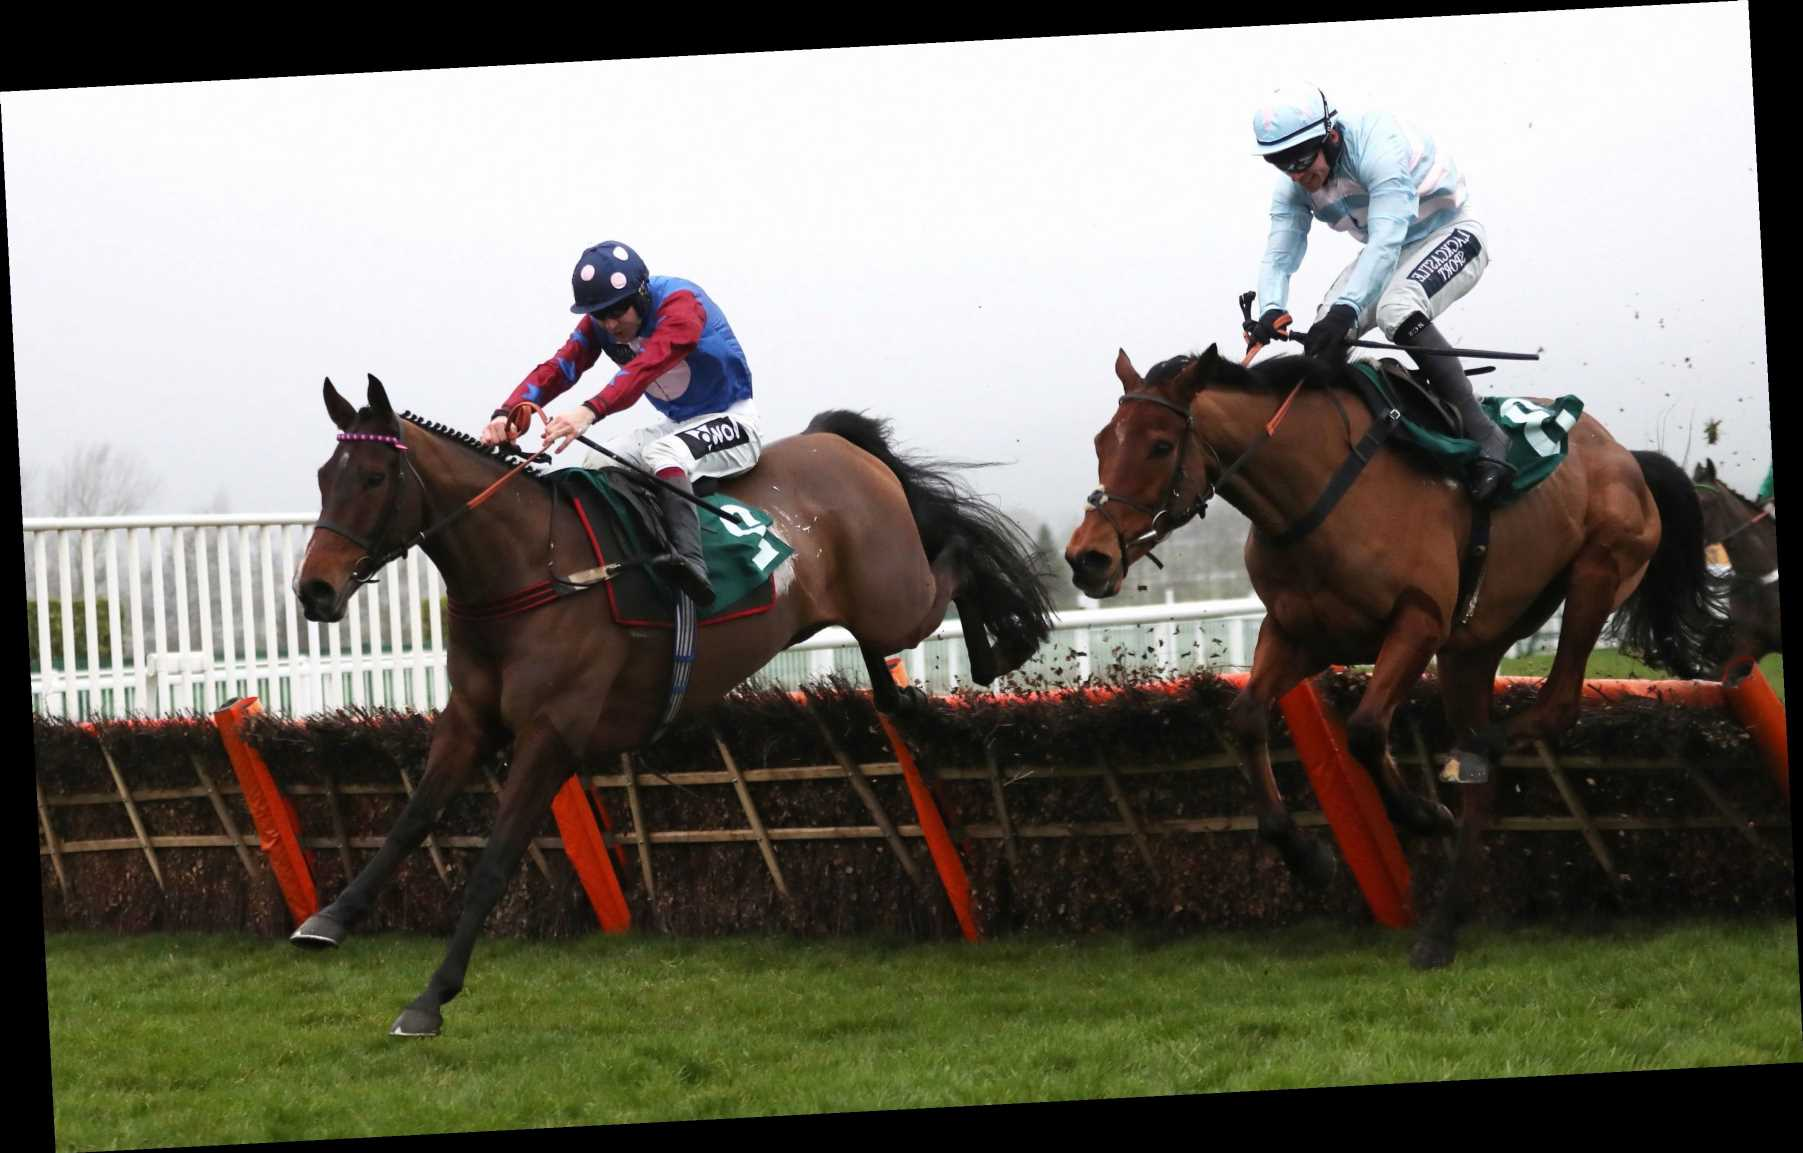 Racing tips: All you need for the Paddy Power Stayers' Hurdle at Cheltenham today